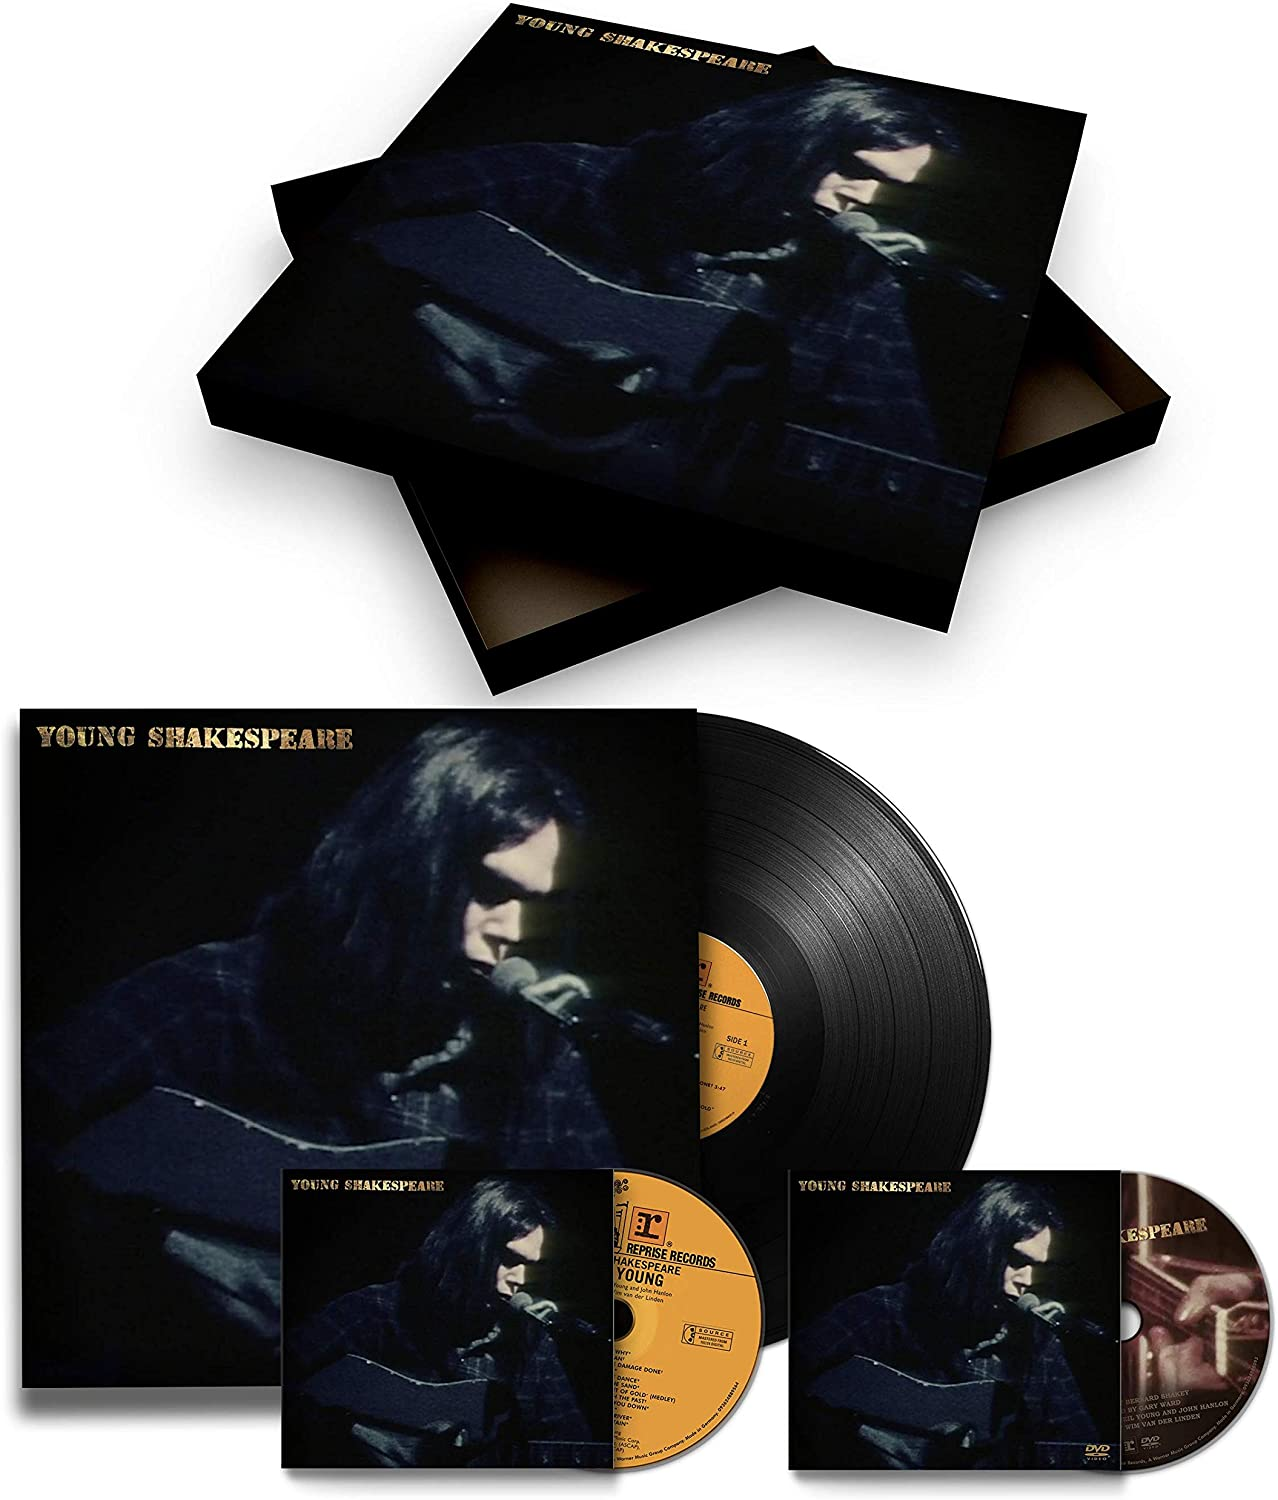 Neil Young – Young Shakespeare Boxset